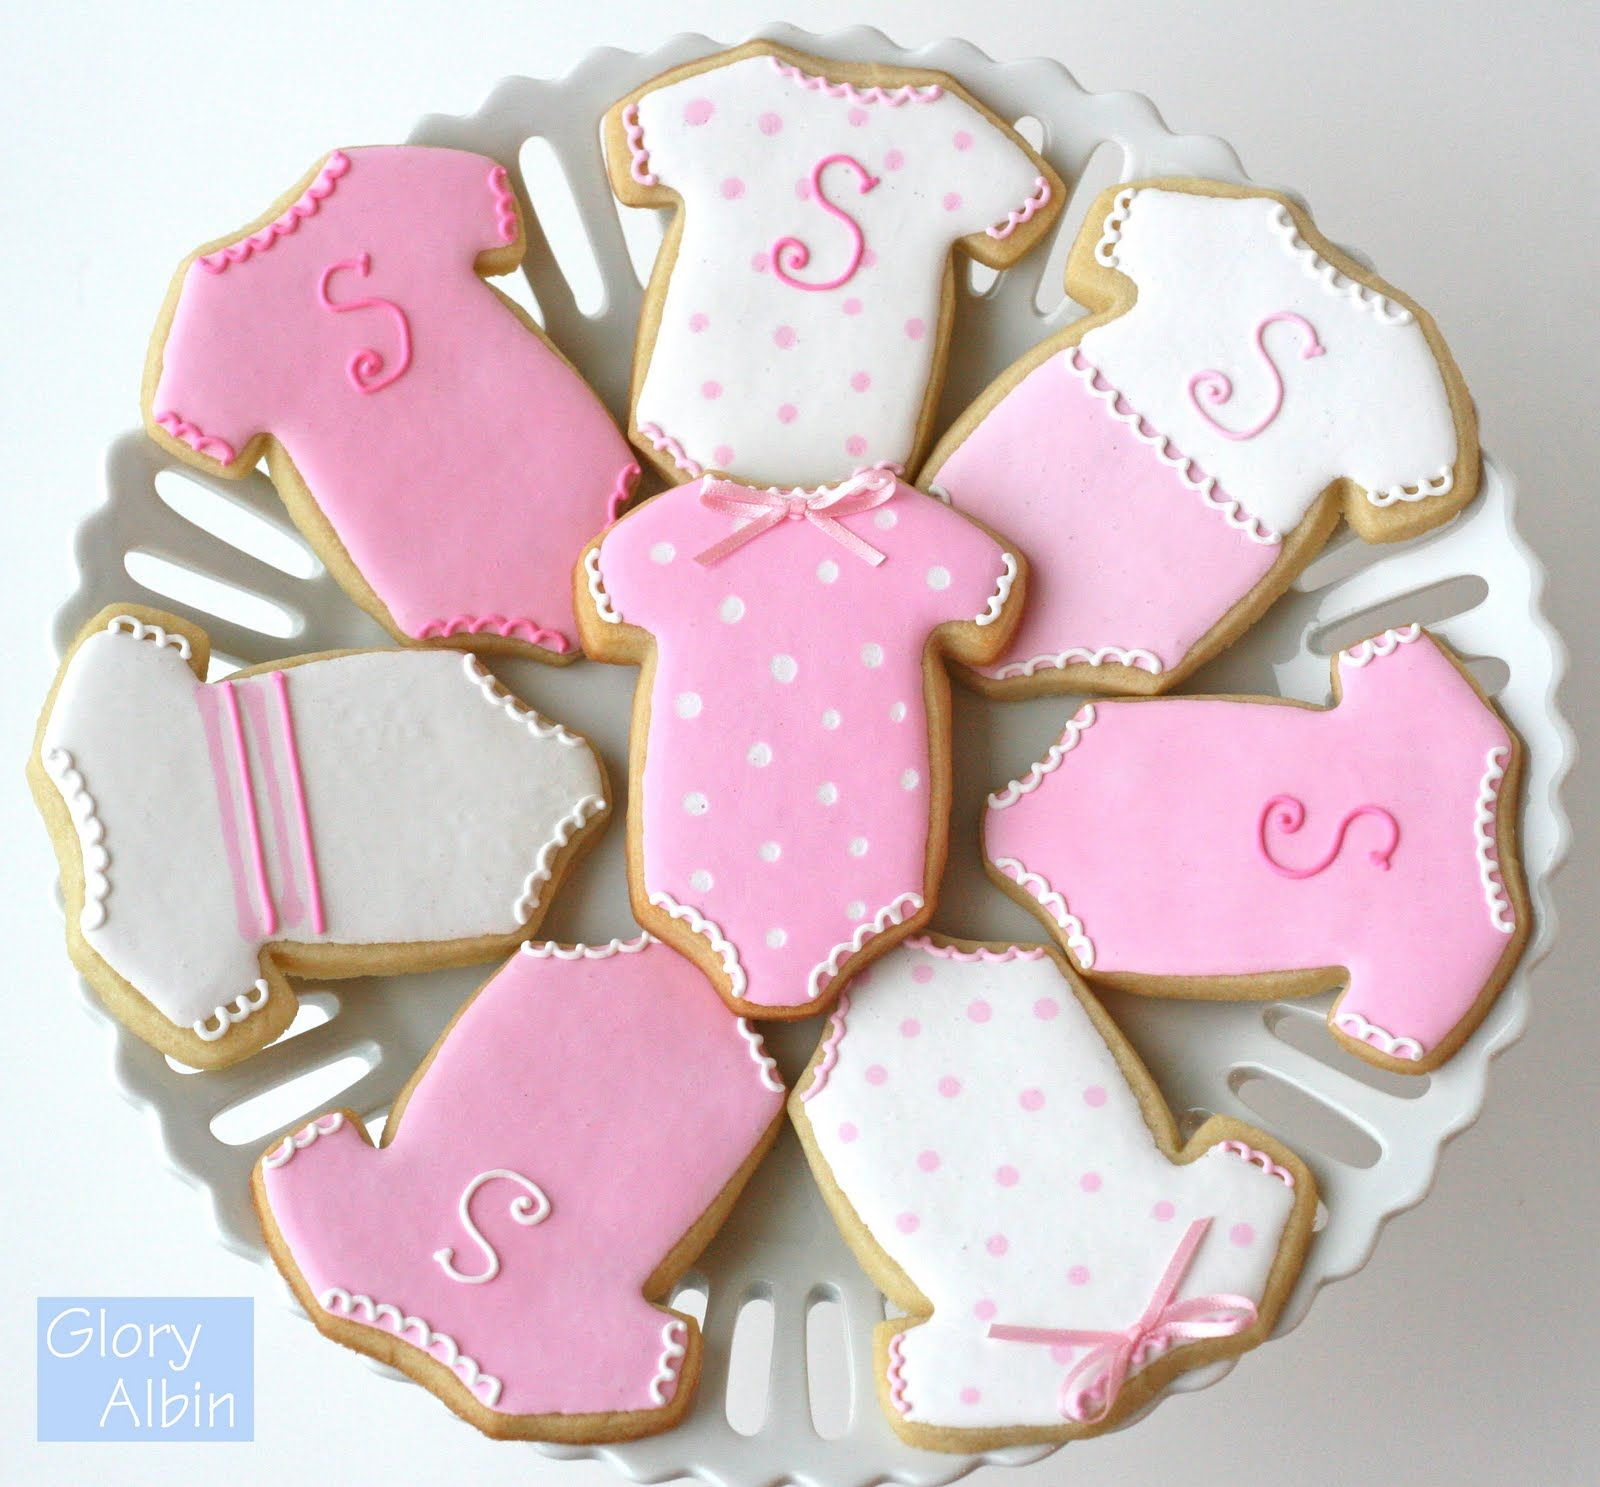 Galletas Decoradas Baby Shower Decorating Sugar Cookies With Royal Icing